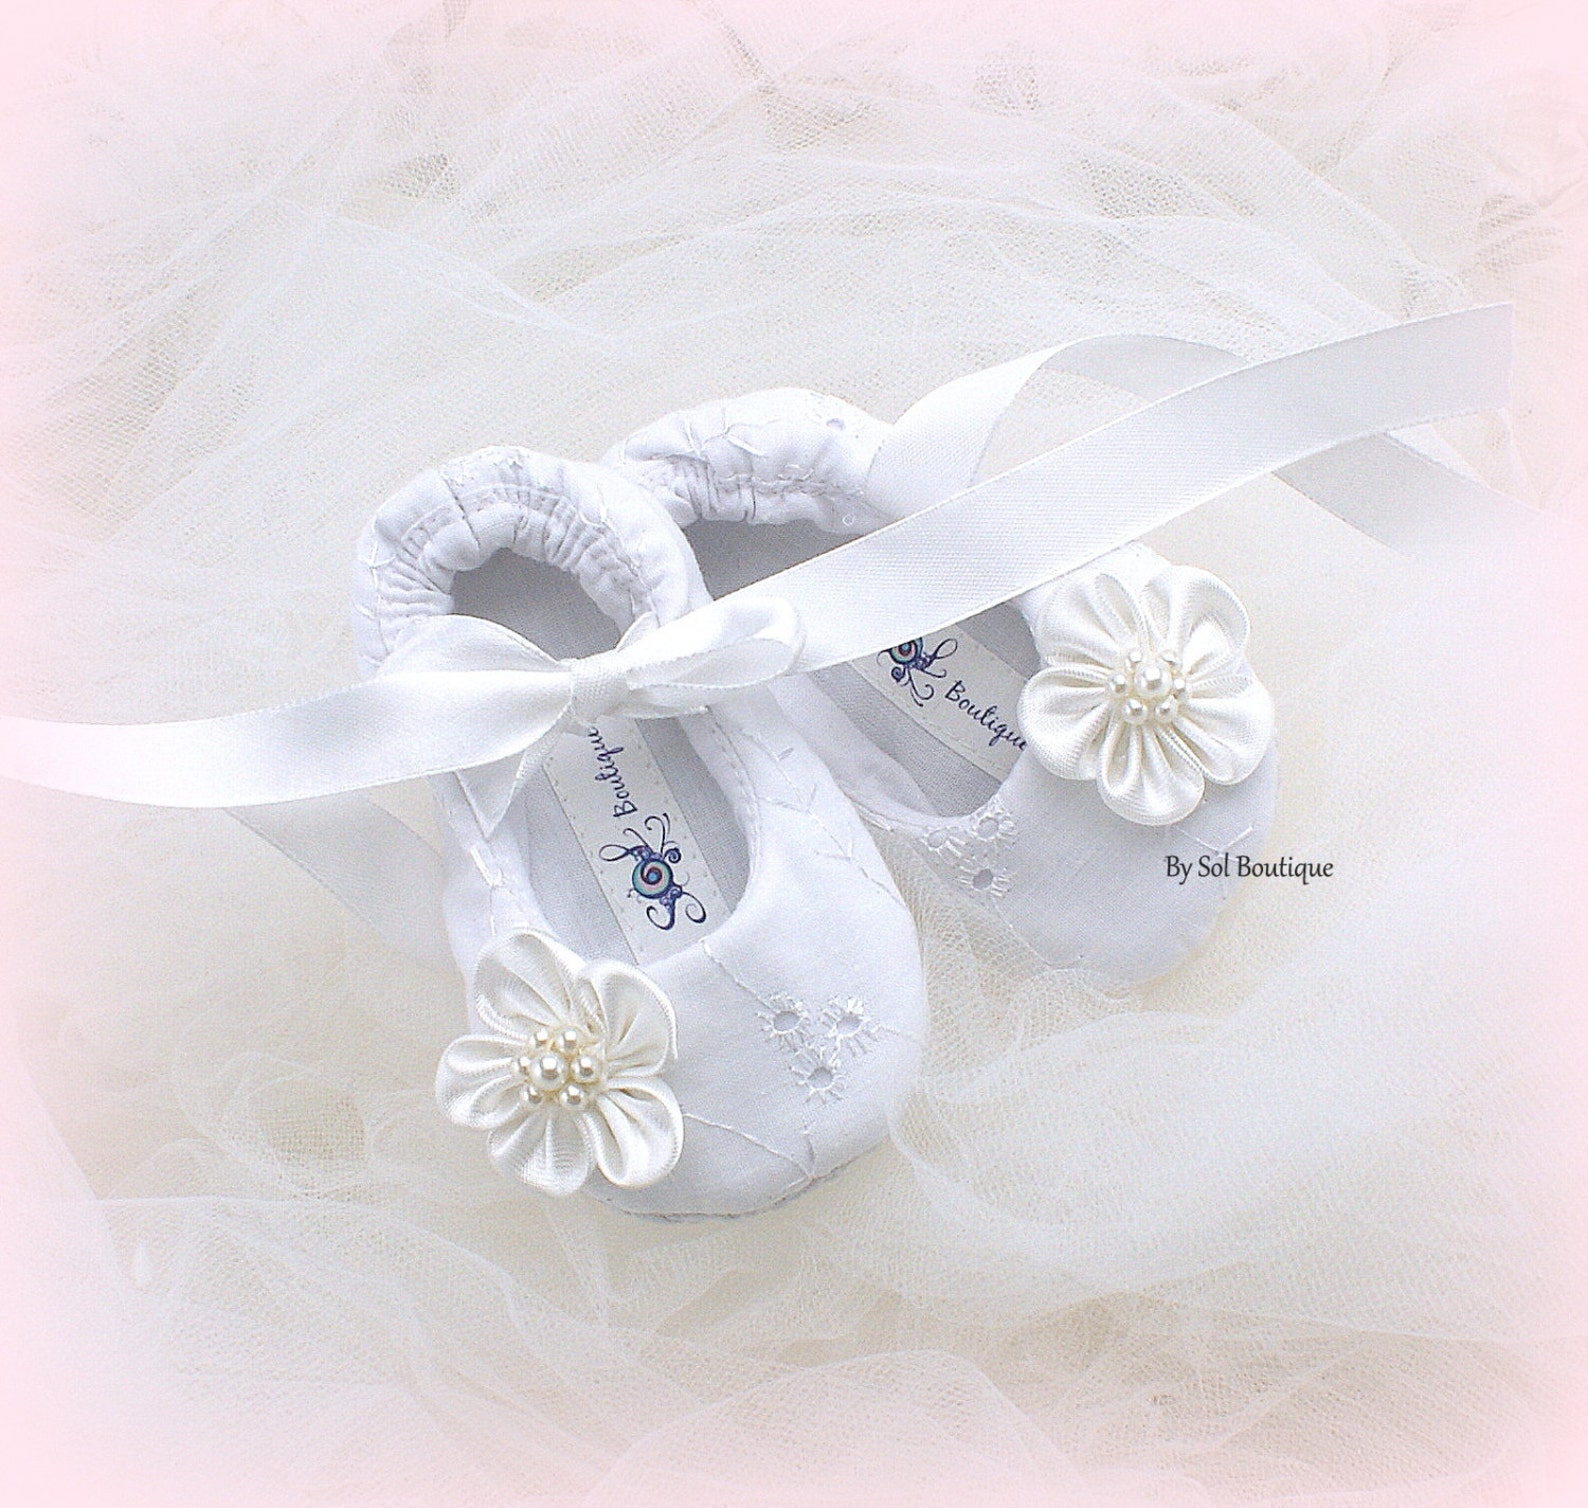 new born shoes, white, christening shoes, baby girl shoes, crib shoes, ballet flats, gift, christening, white eyelet shoes, moth